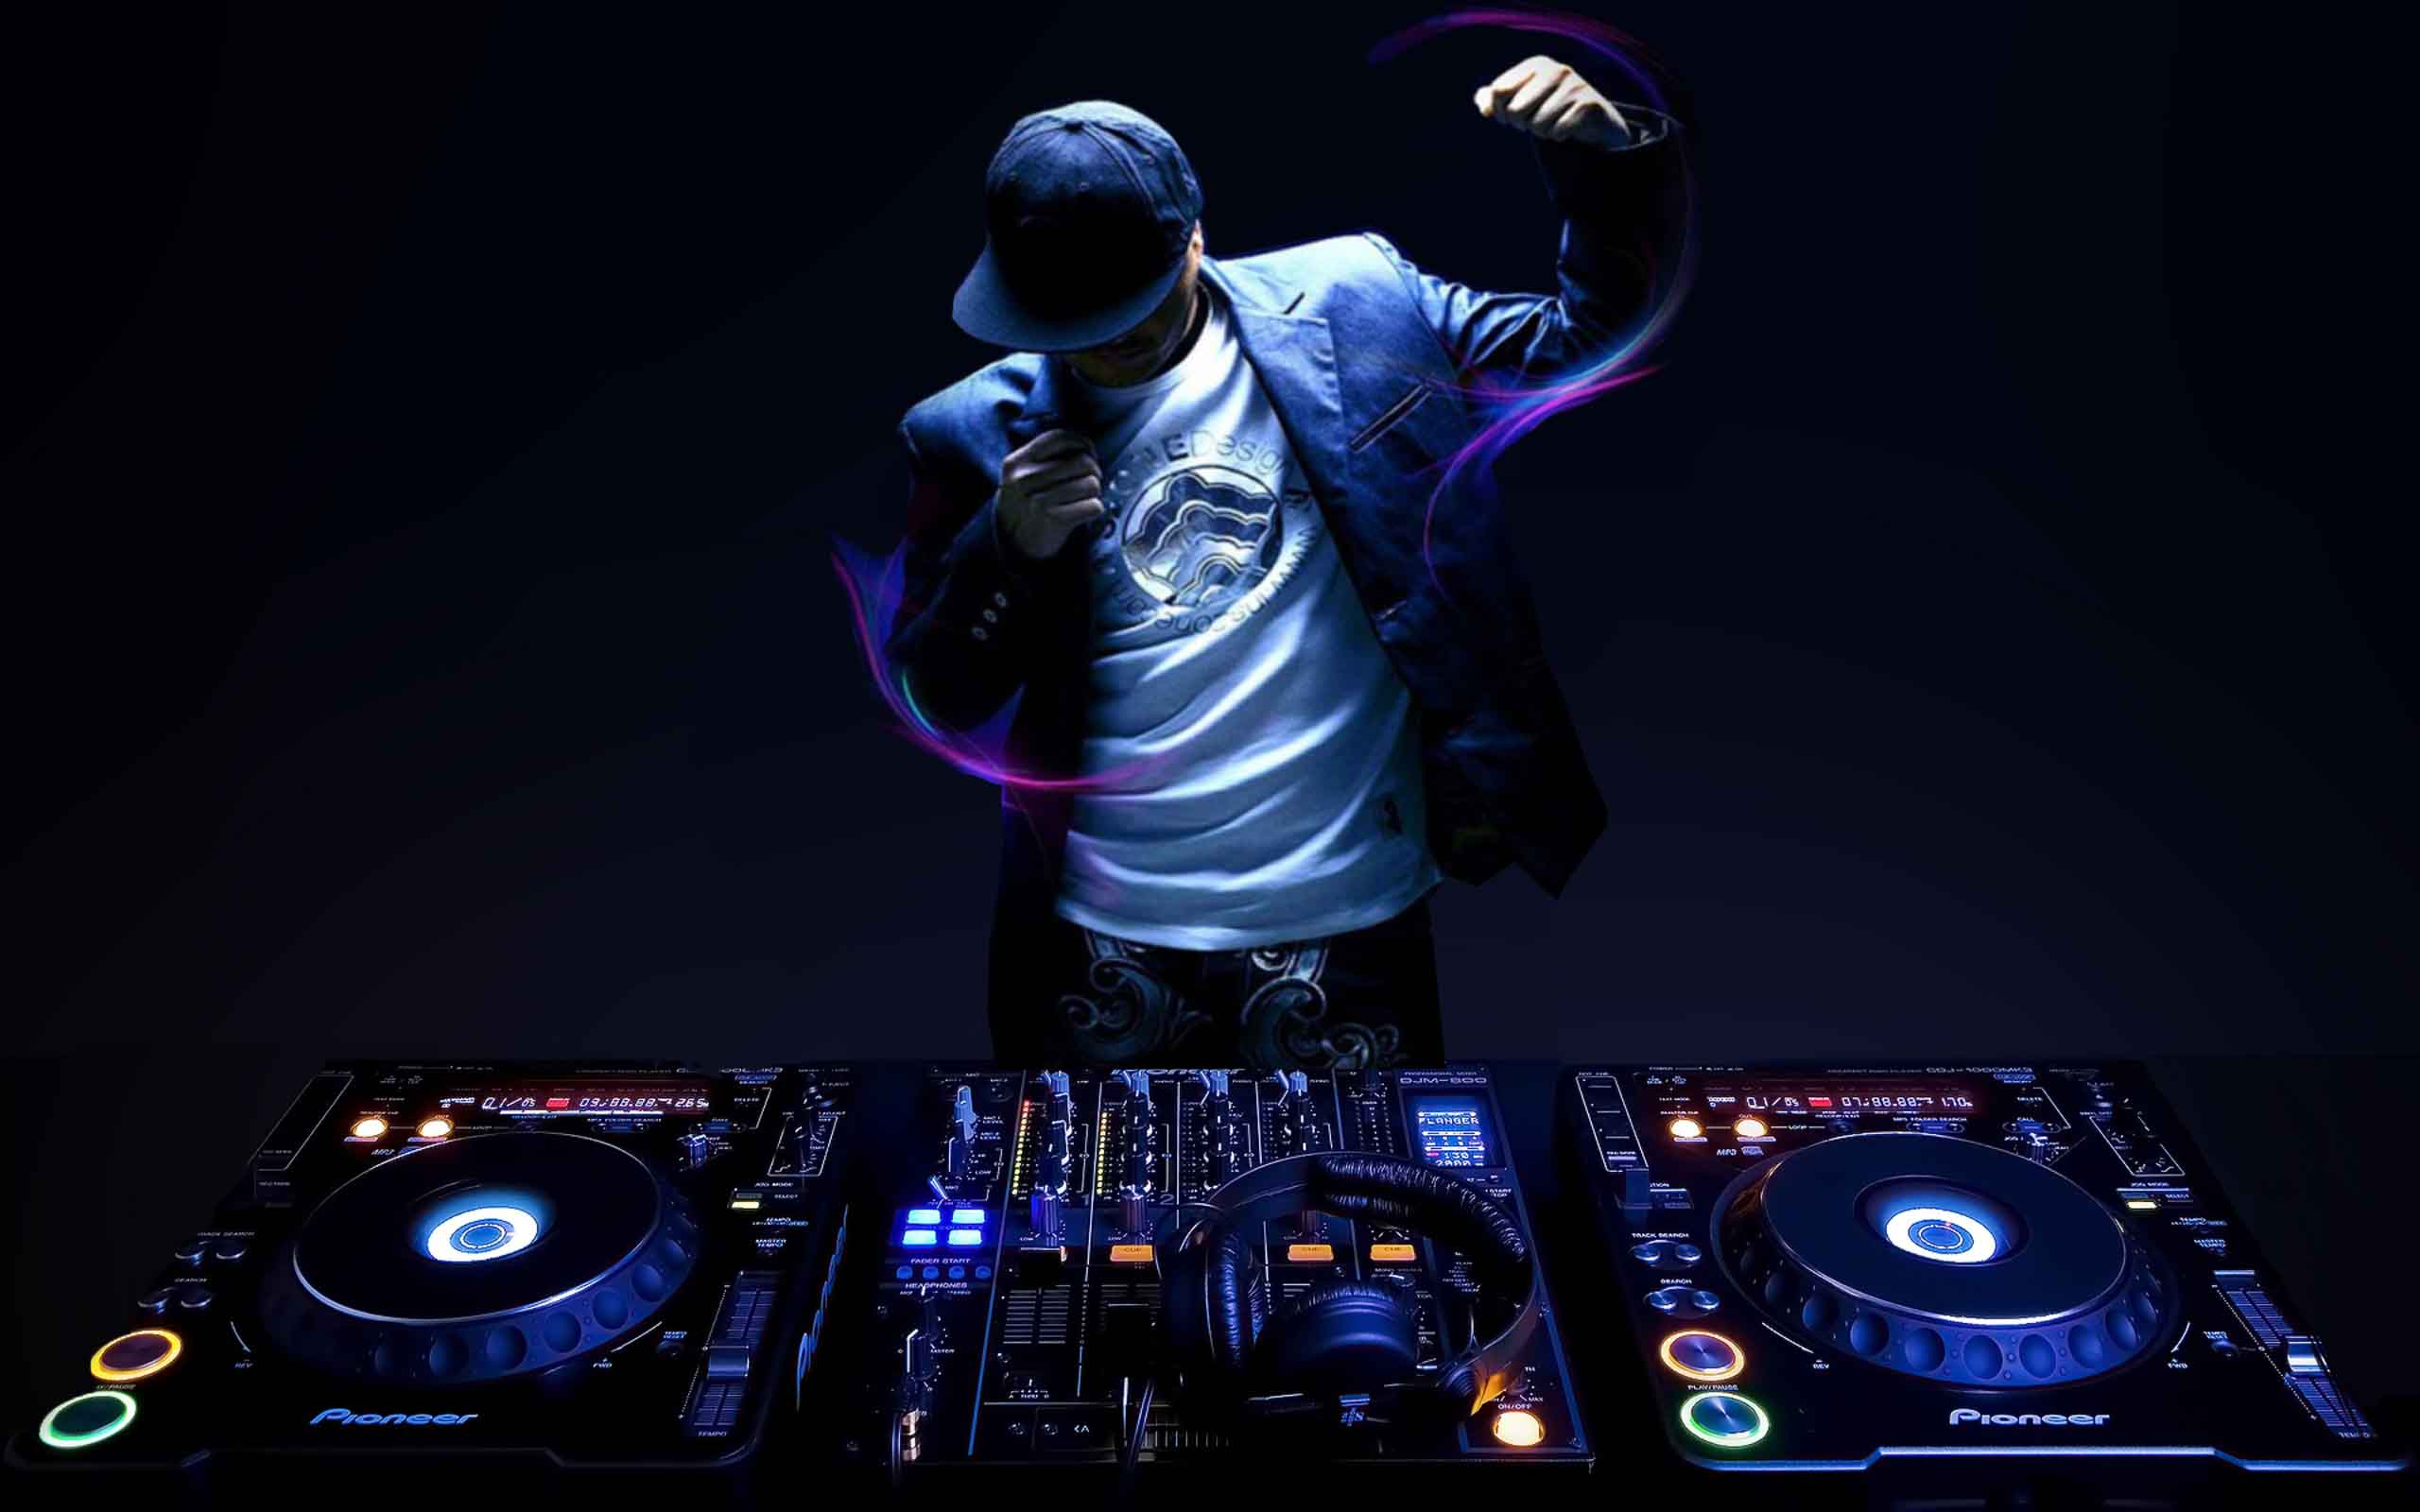 Dj Wallpapers HD 2015 - Wallpaper Cave